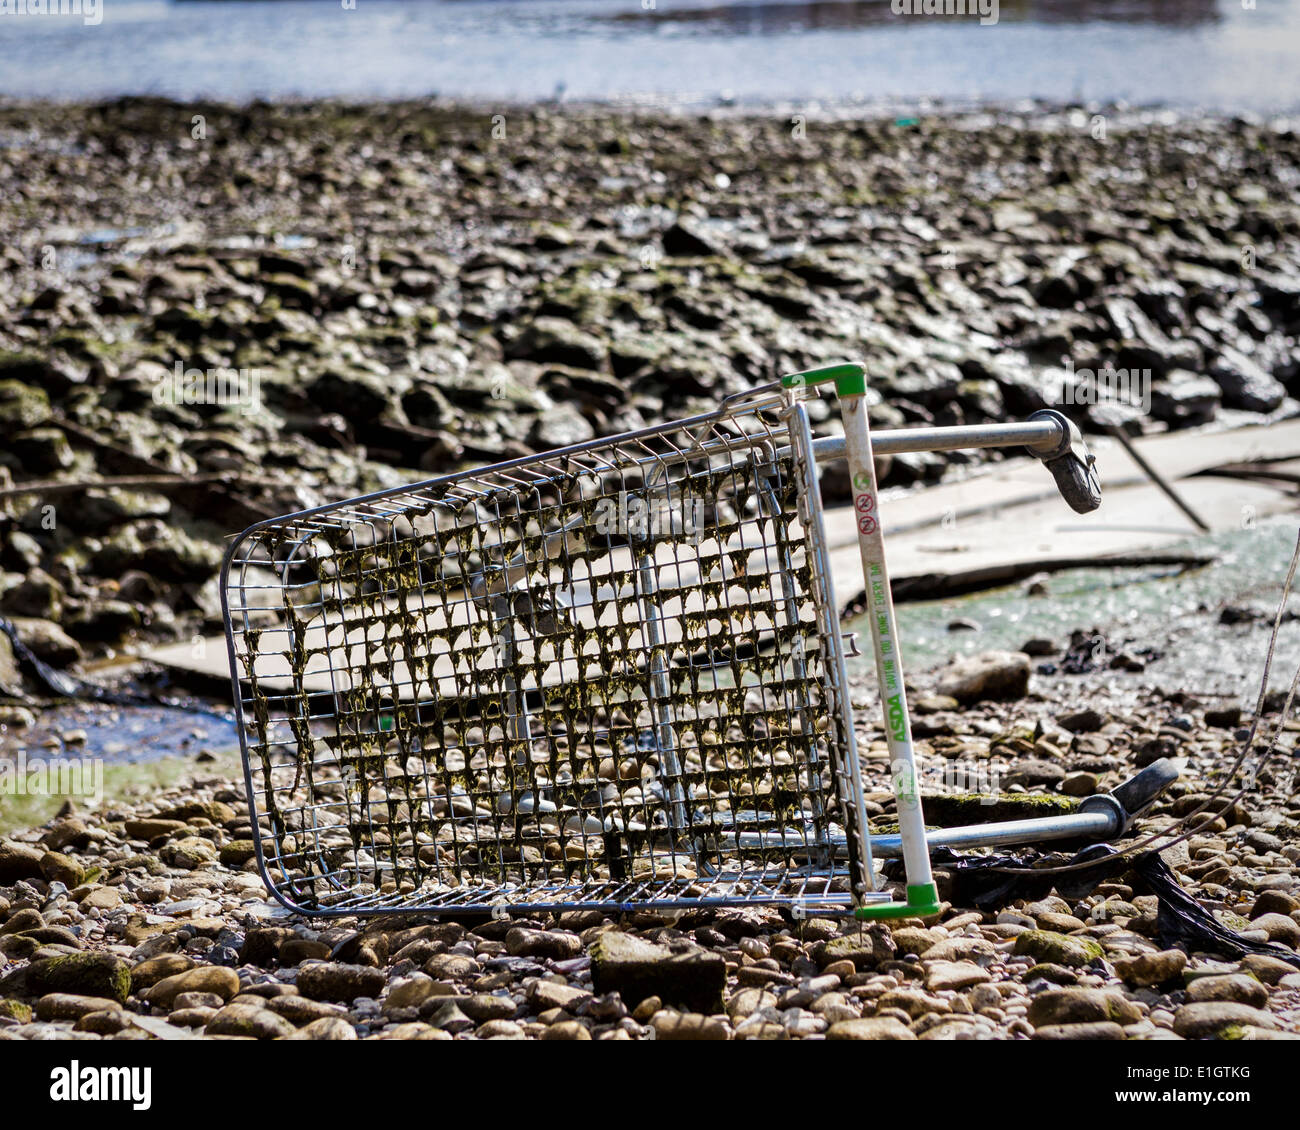 Old rusty discarded Asda shopping trolley in the exposed riverbed of the River Thames at low tide, Greenwich, London, UK - Stock Image